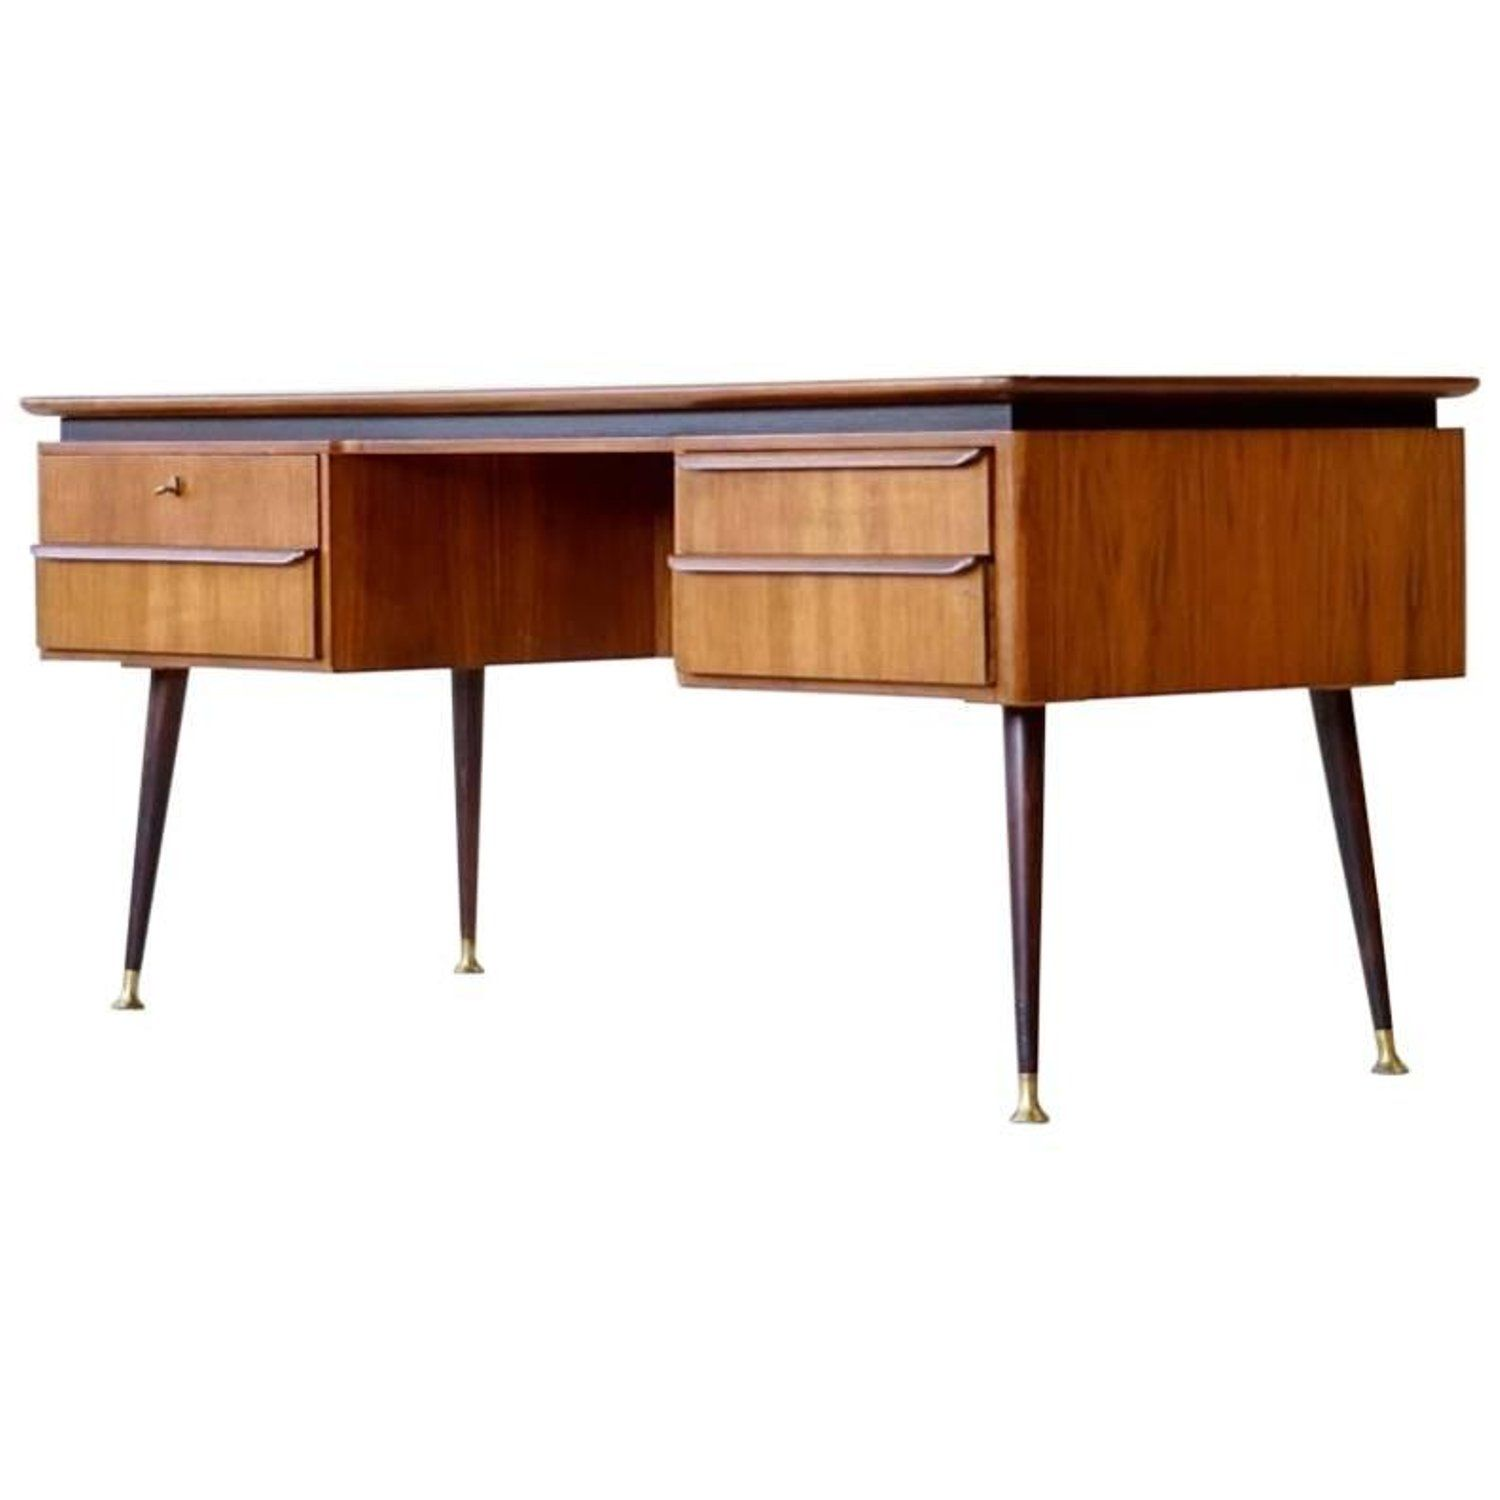 Exclusive Free Standing Desk By Erwin Behr Mid Century Modern 1950s Home Decor Mid Century Modern Standing Desk